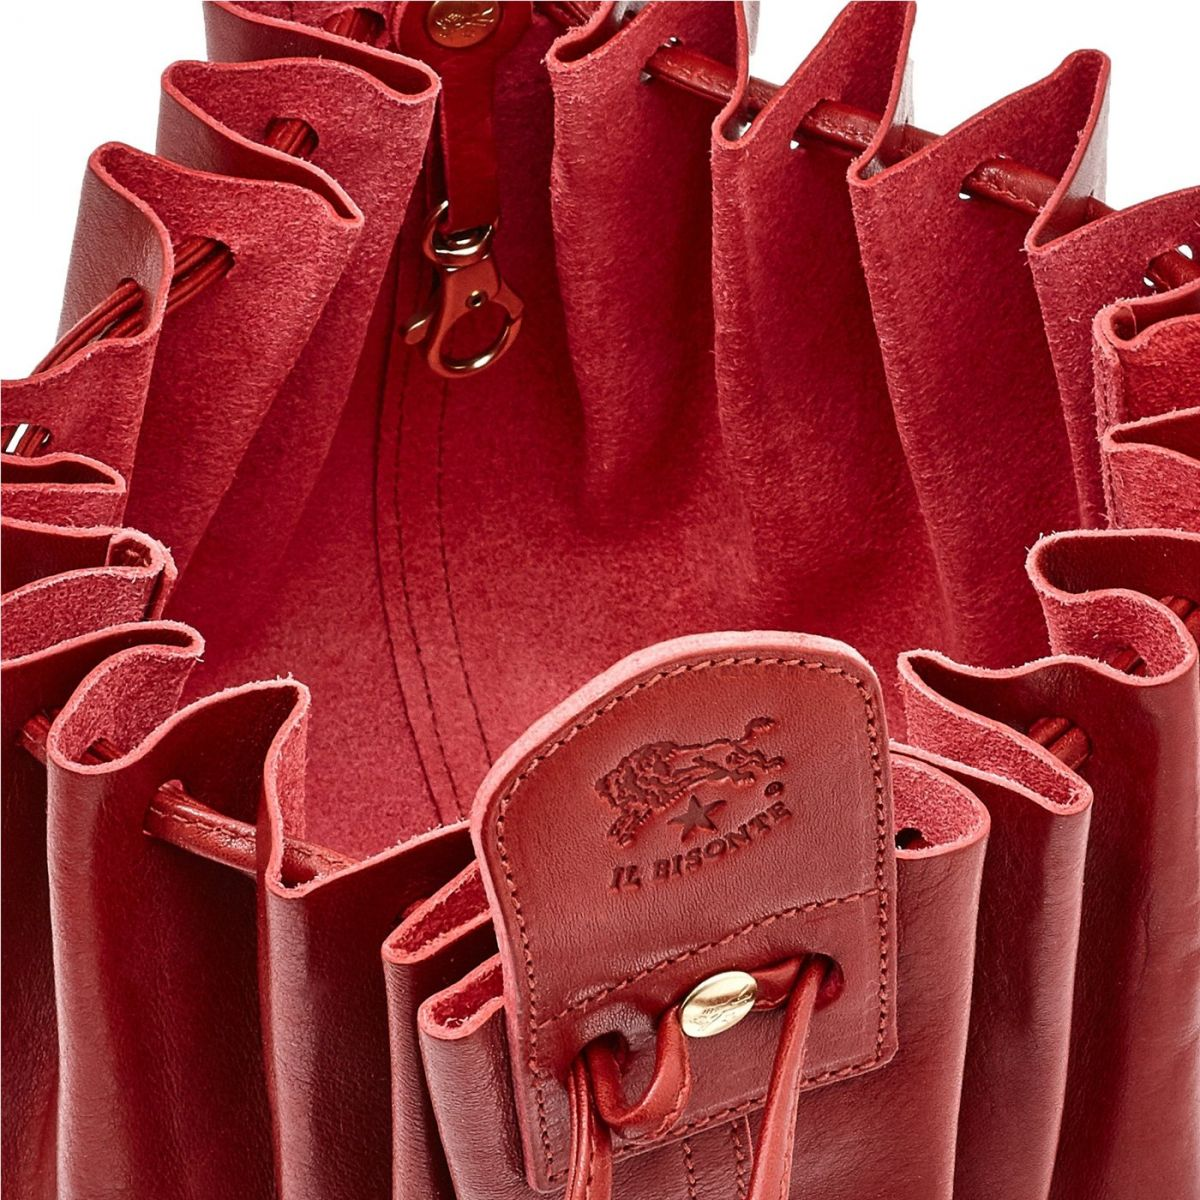 Sabrina - Women's Crossbody Bag in Cowhide Double Leather BCR002 color Red | Details